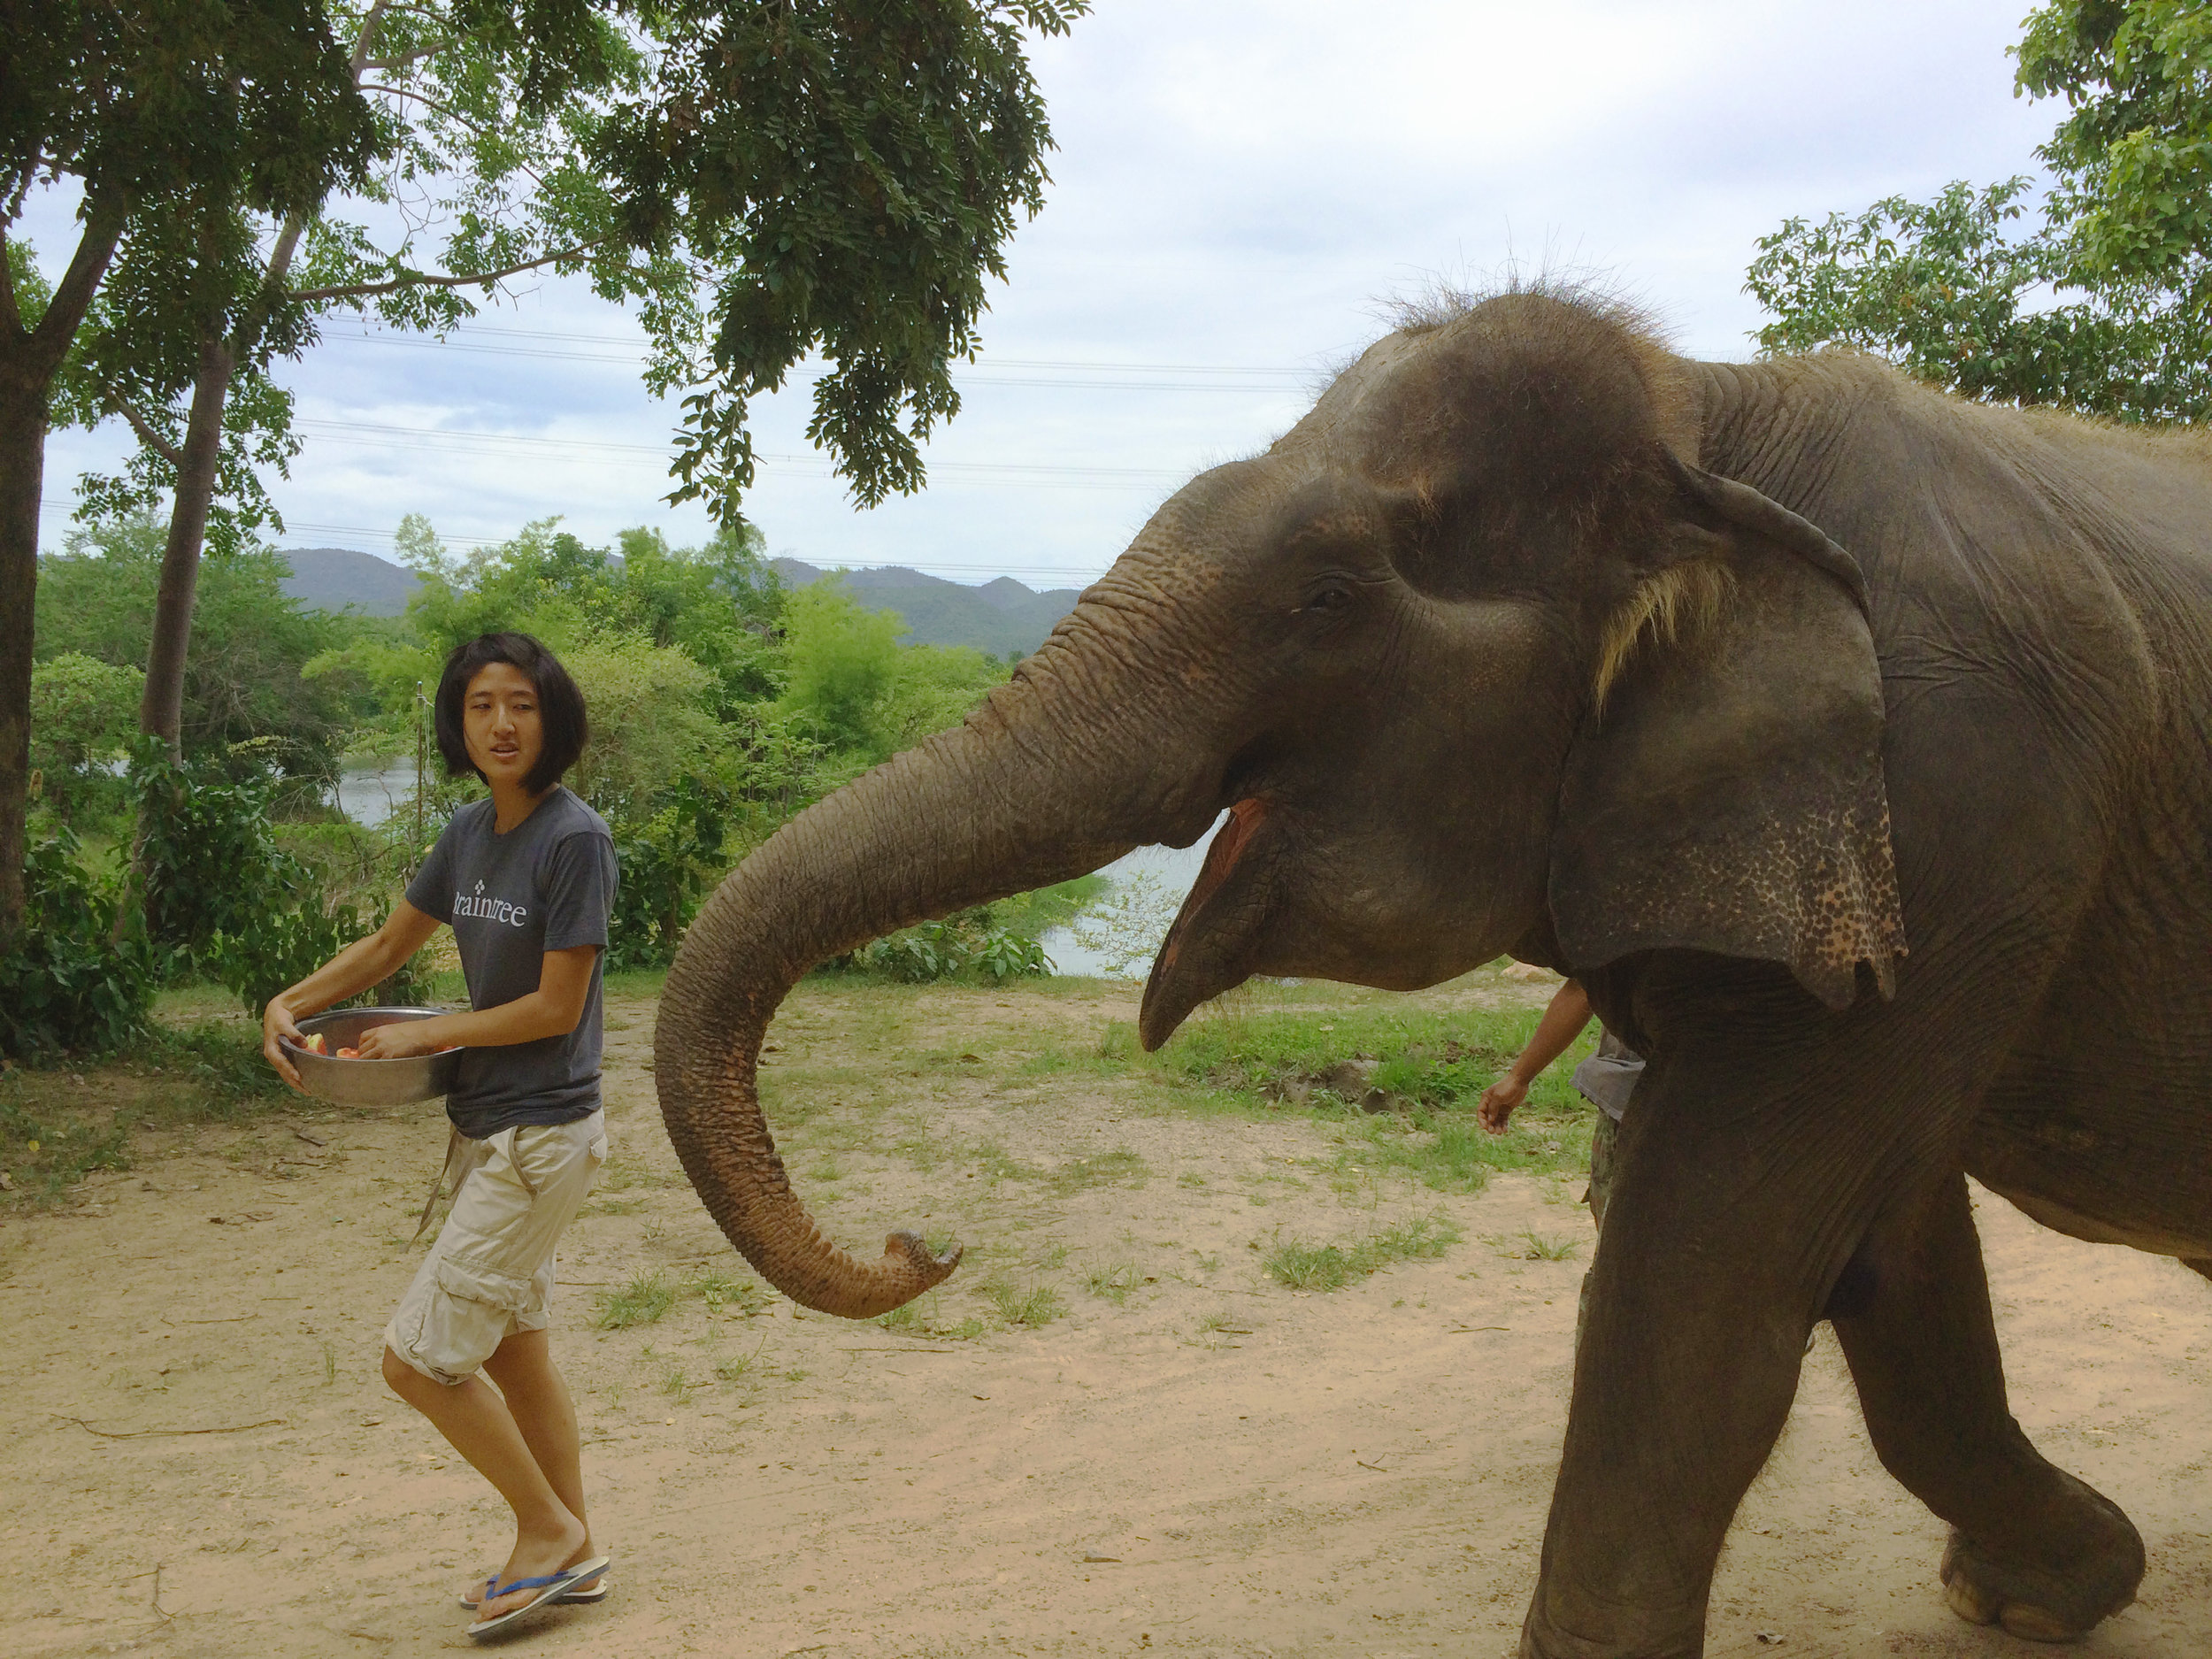 Daily walks and showers helped to keep the elephants happy and healthy and allowed us to interact closely with them. This was a great alternative to the abusive practice of elephant trekking.